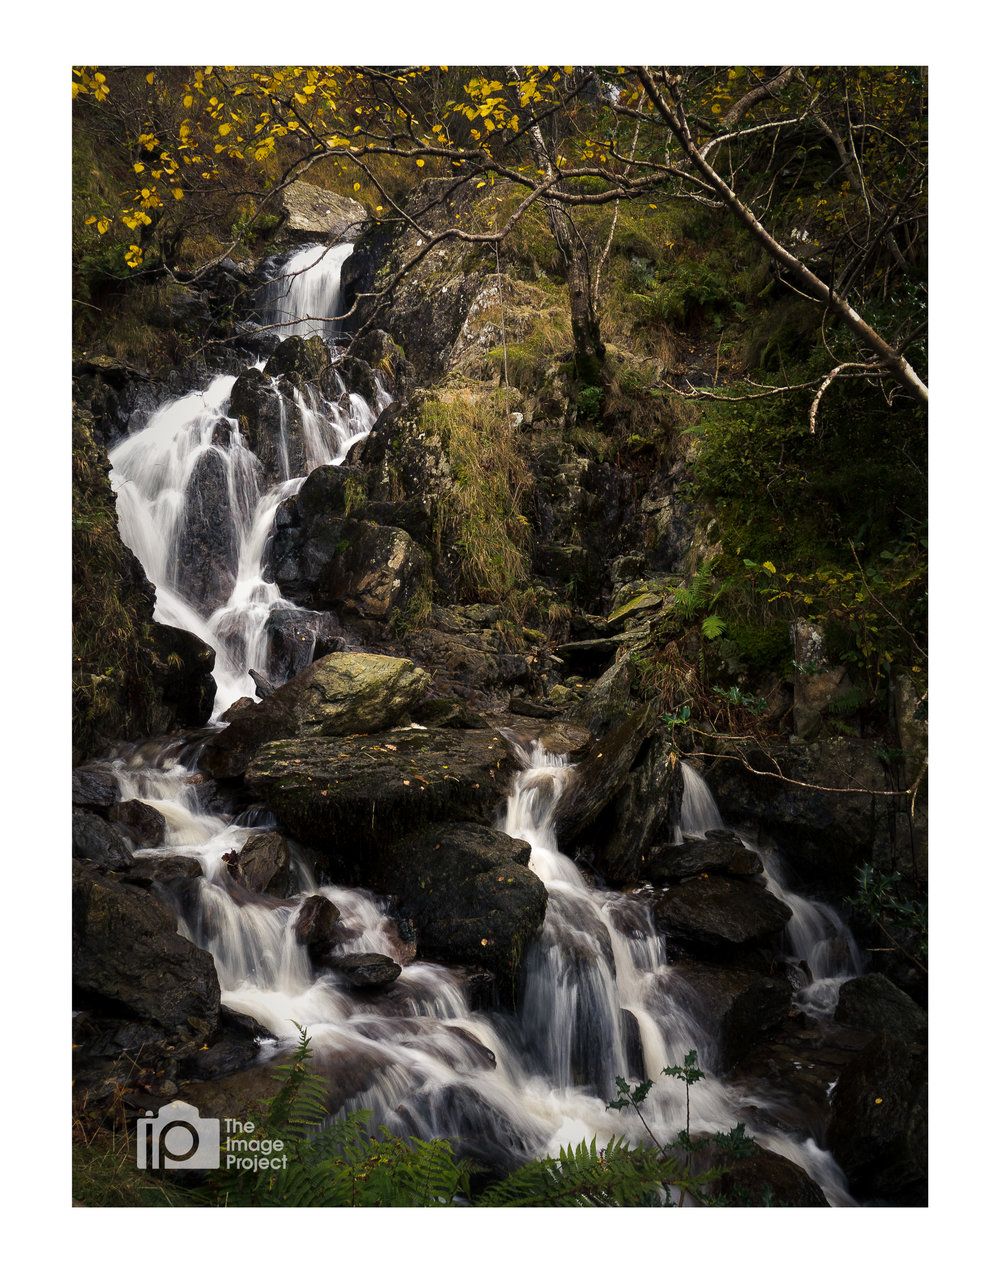 Small falls near Brotherswater in autumn